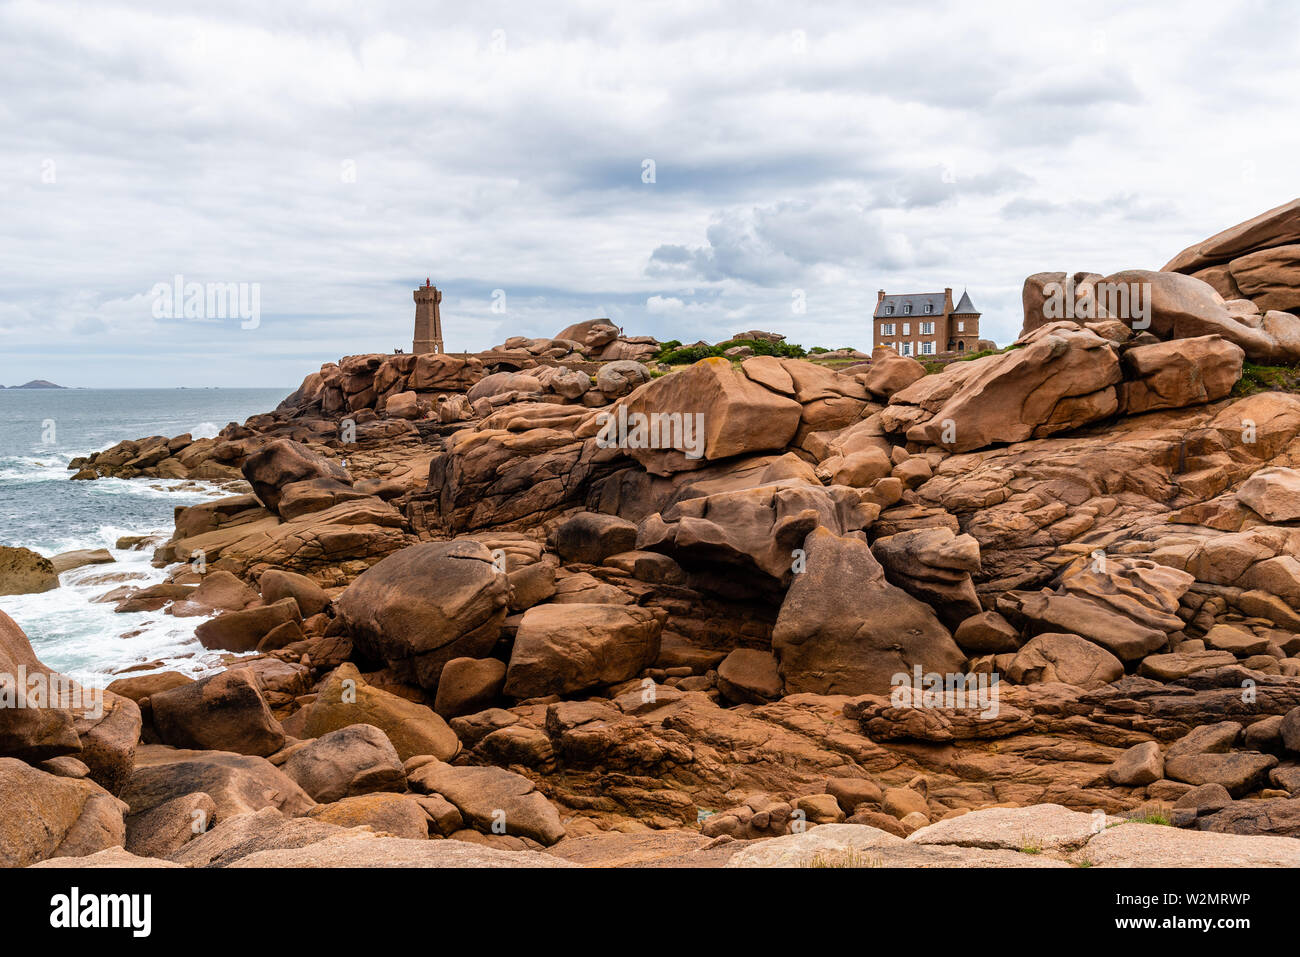 Beautiful rocky landscape in the coast of Brittany, Ploumanac'h lighthouse against sky. Stock Photo